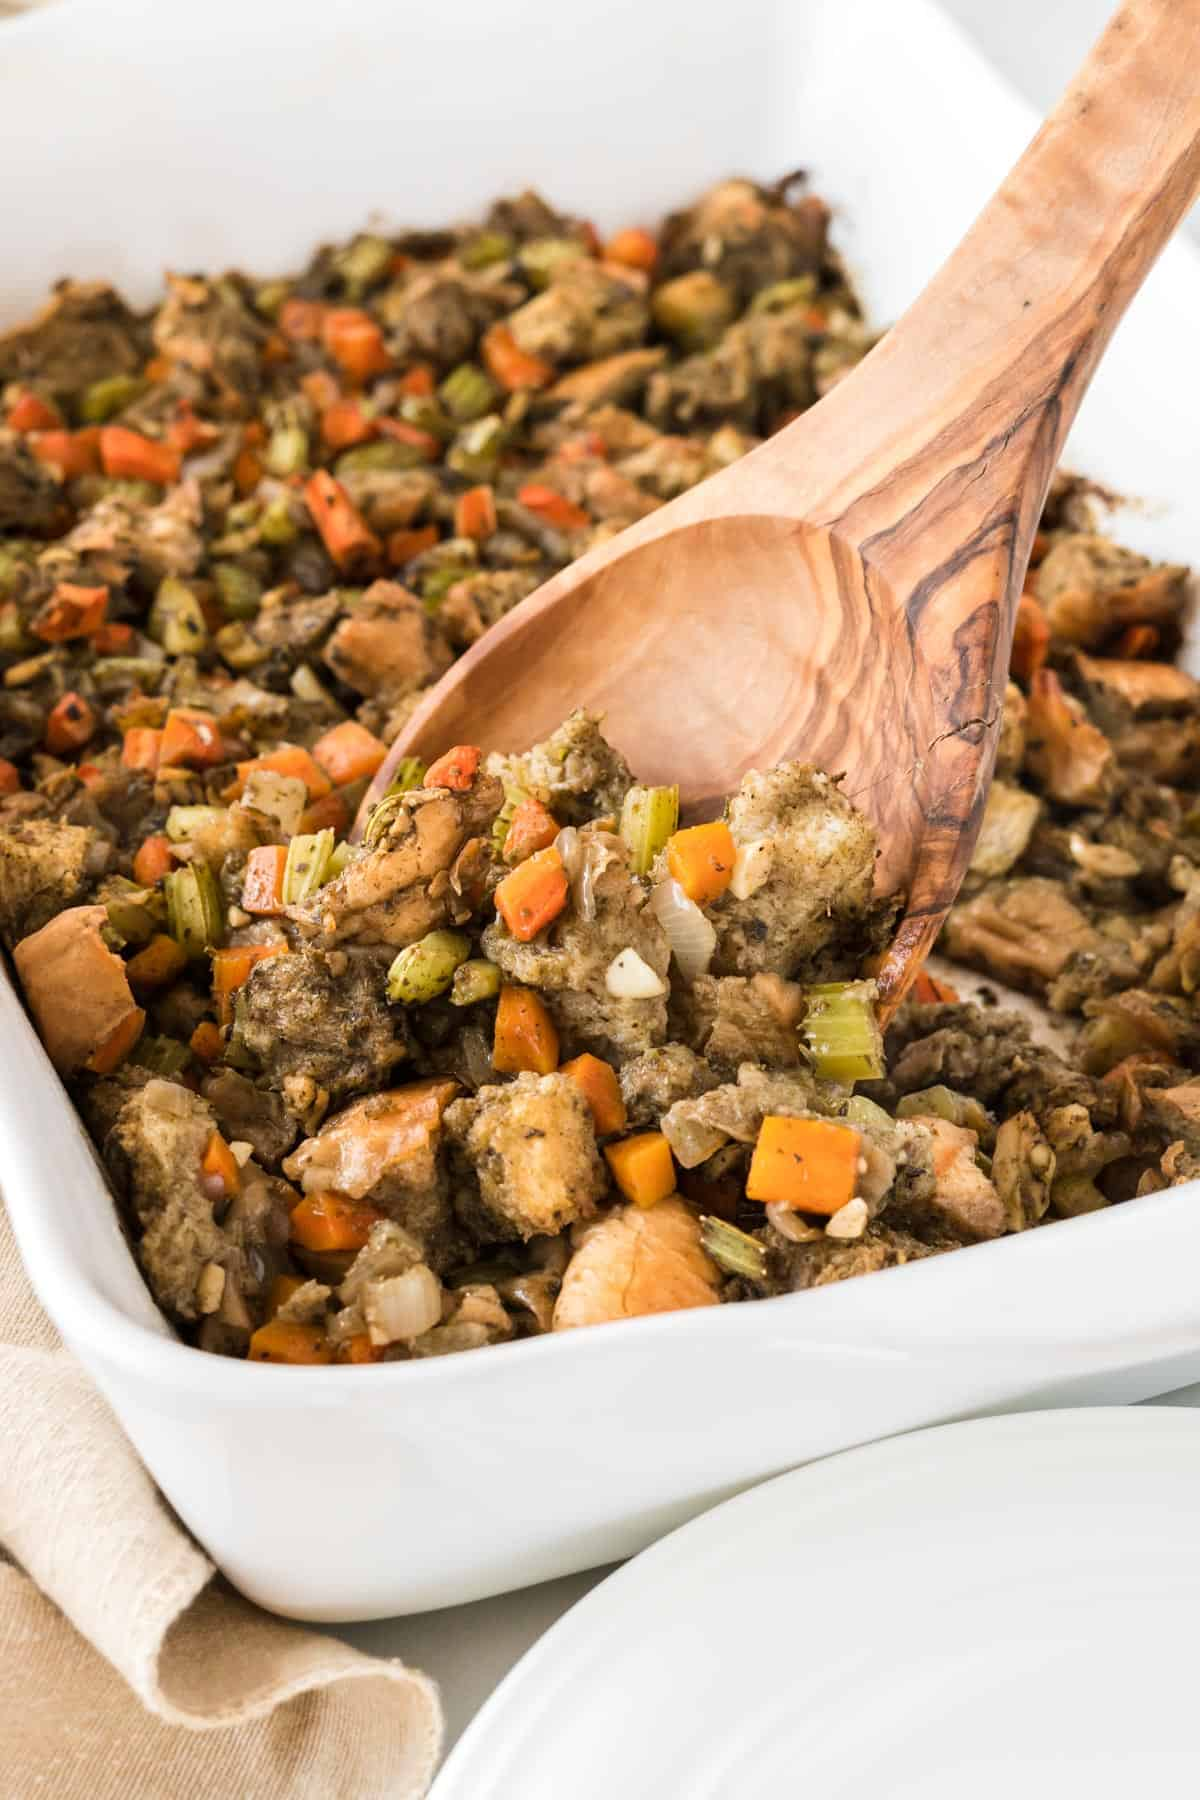 wooden spoon taking a scoop of stuffing